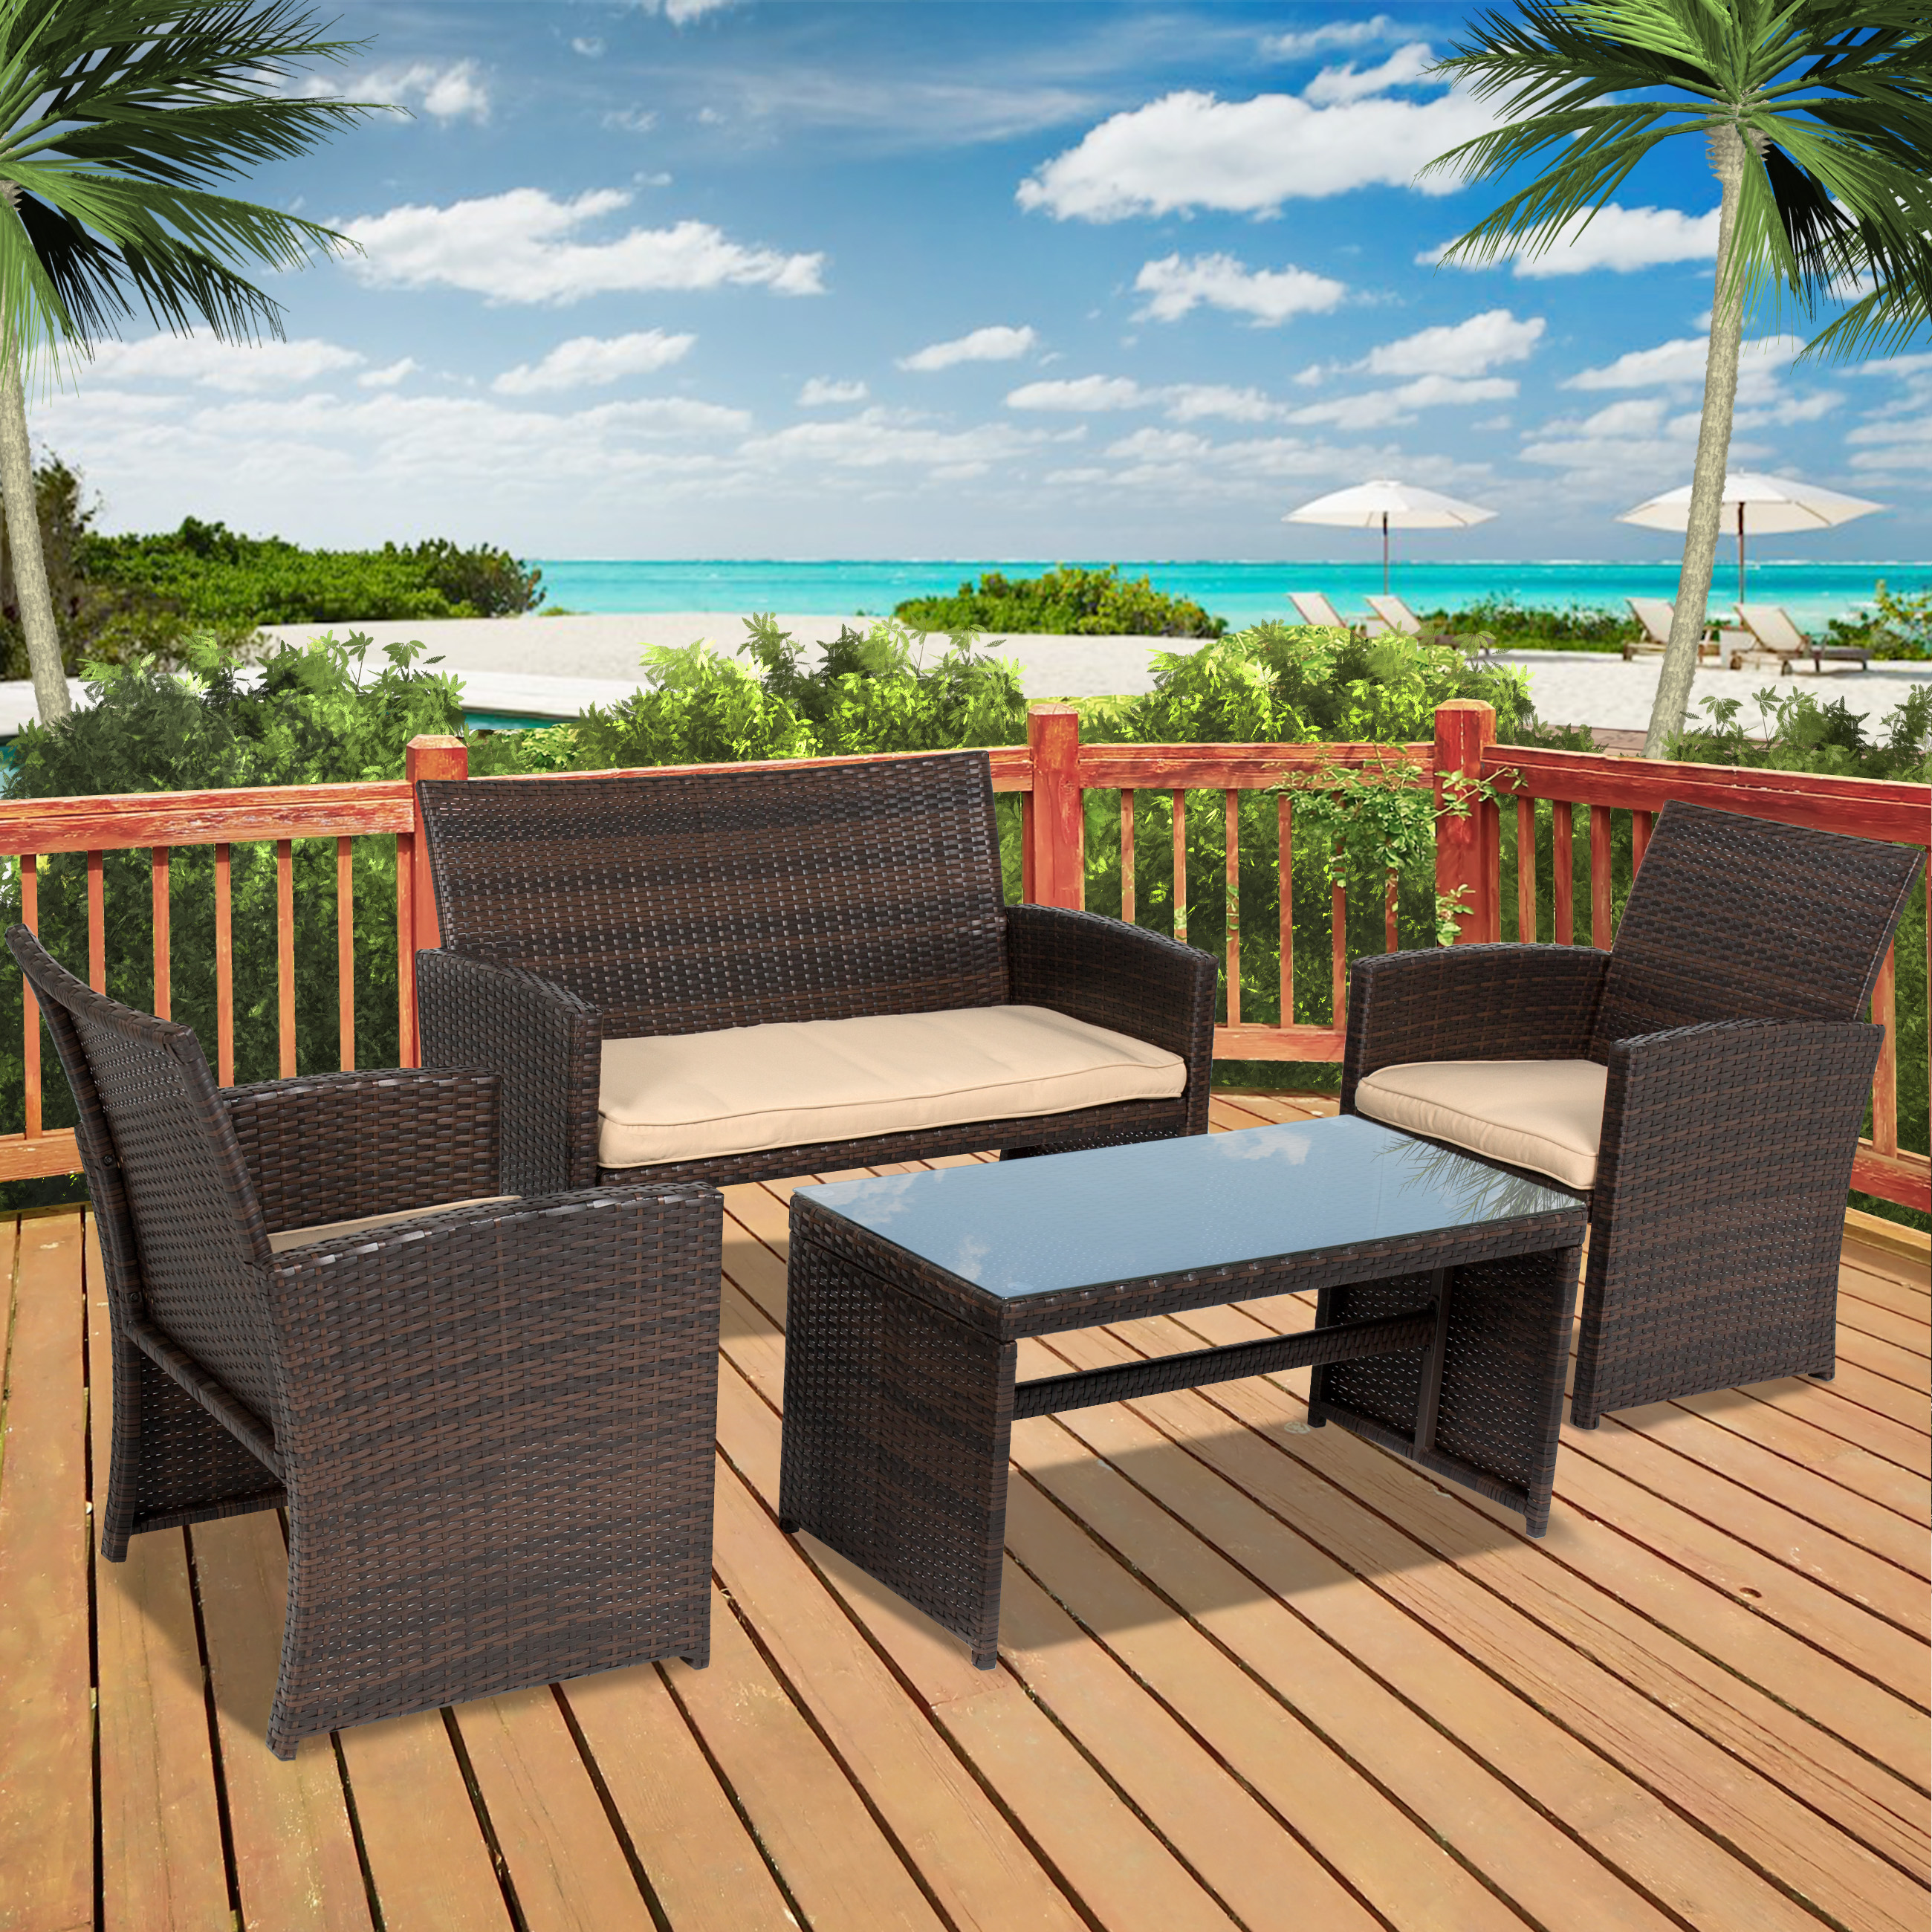 Best Choice Products Outdoor Garden Patio 4pc Cushioned Seat Wicker Sofa Furniture Set